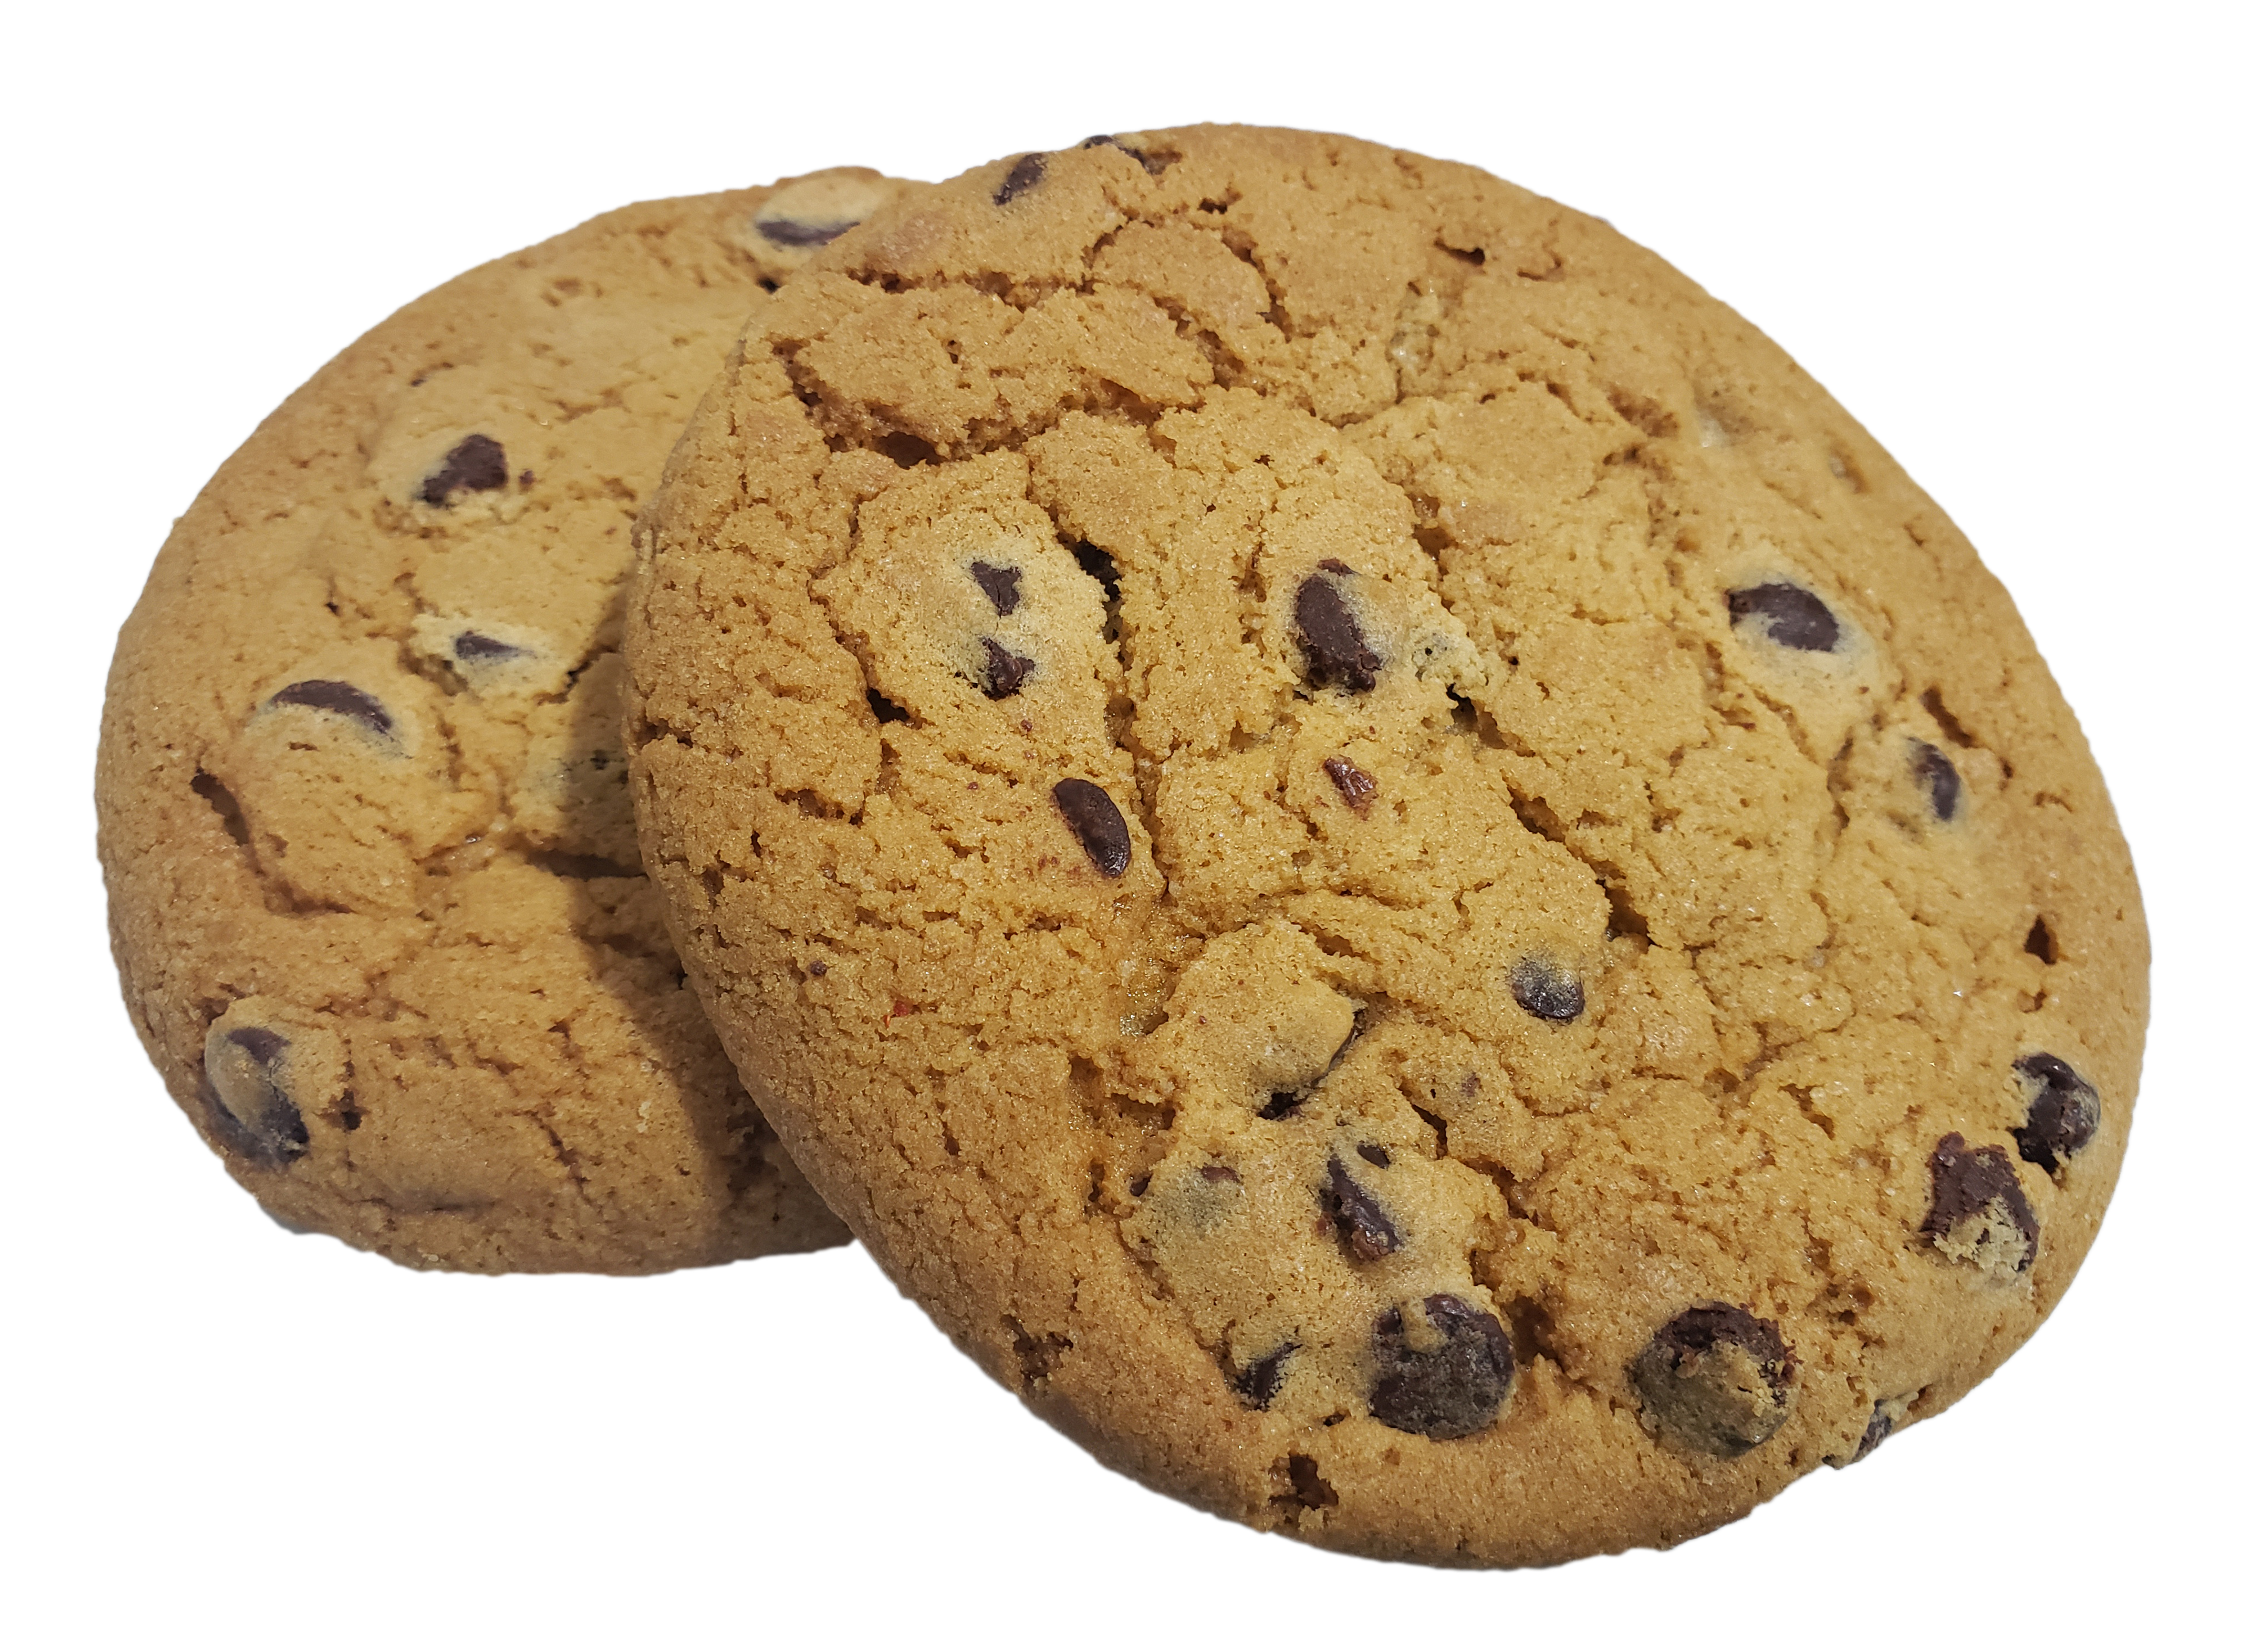 Chocolate Chip Cookie EDITED